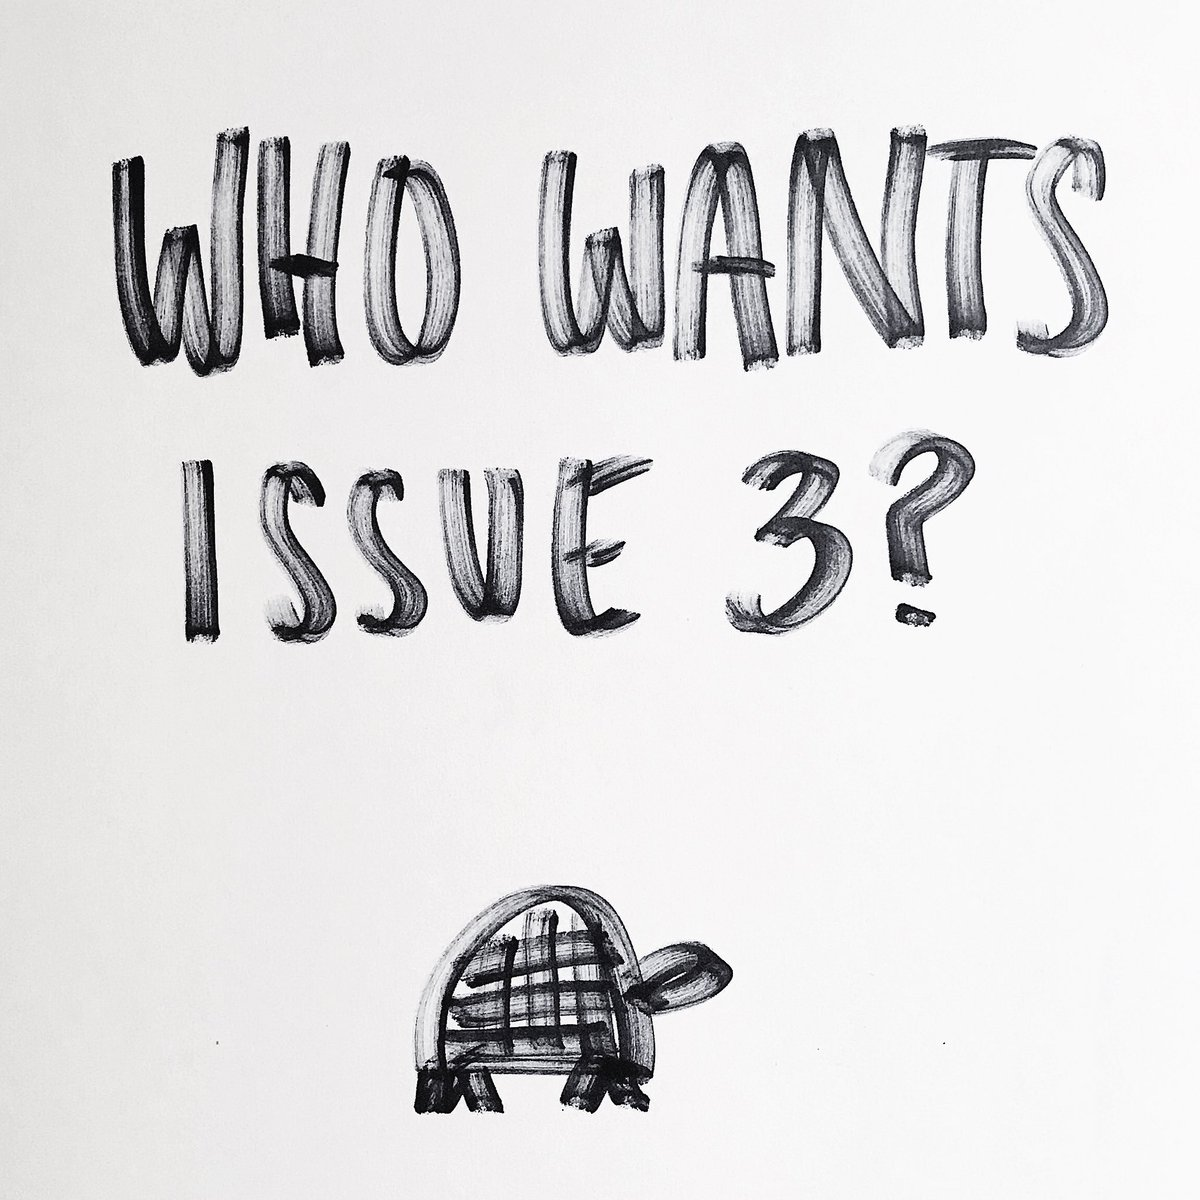 Issue 3 of #TortoiseMagazine is coming really soon. Who is excited?#Chester #YoursSlowly <br>http://pic.twitter.com/poZ7SSGvAa